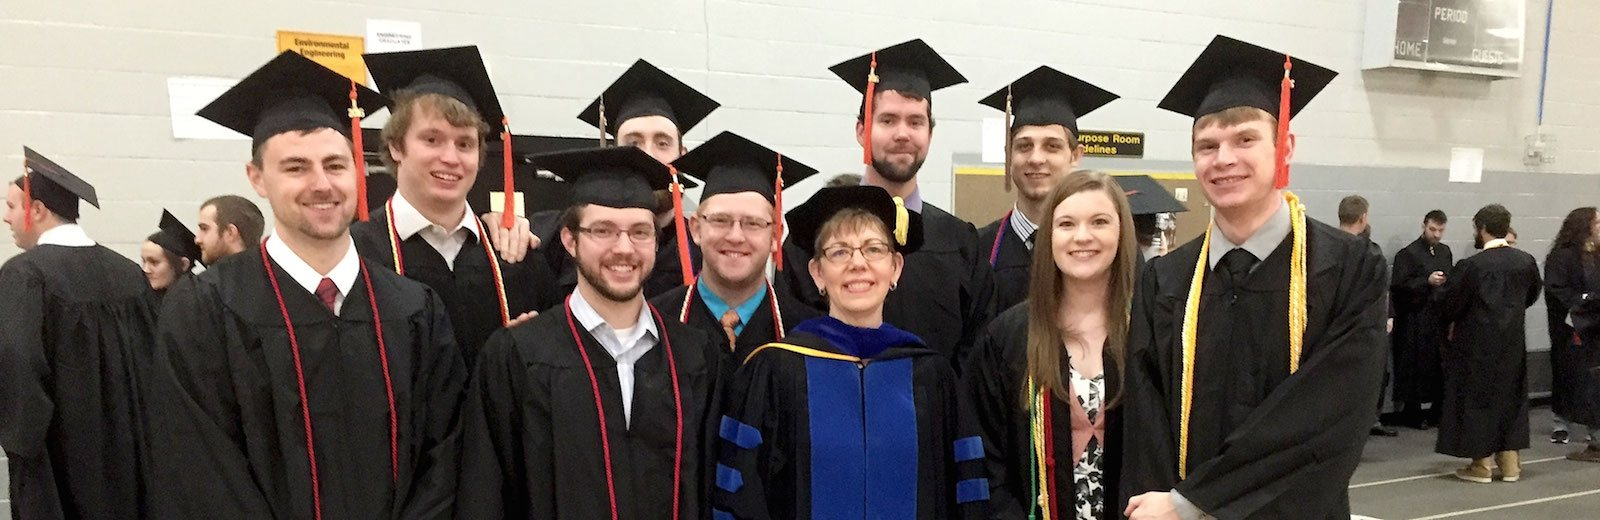 Dean of Students Bonnie Gorman with students at Commencement